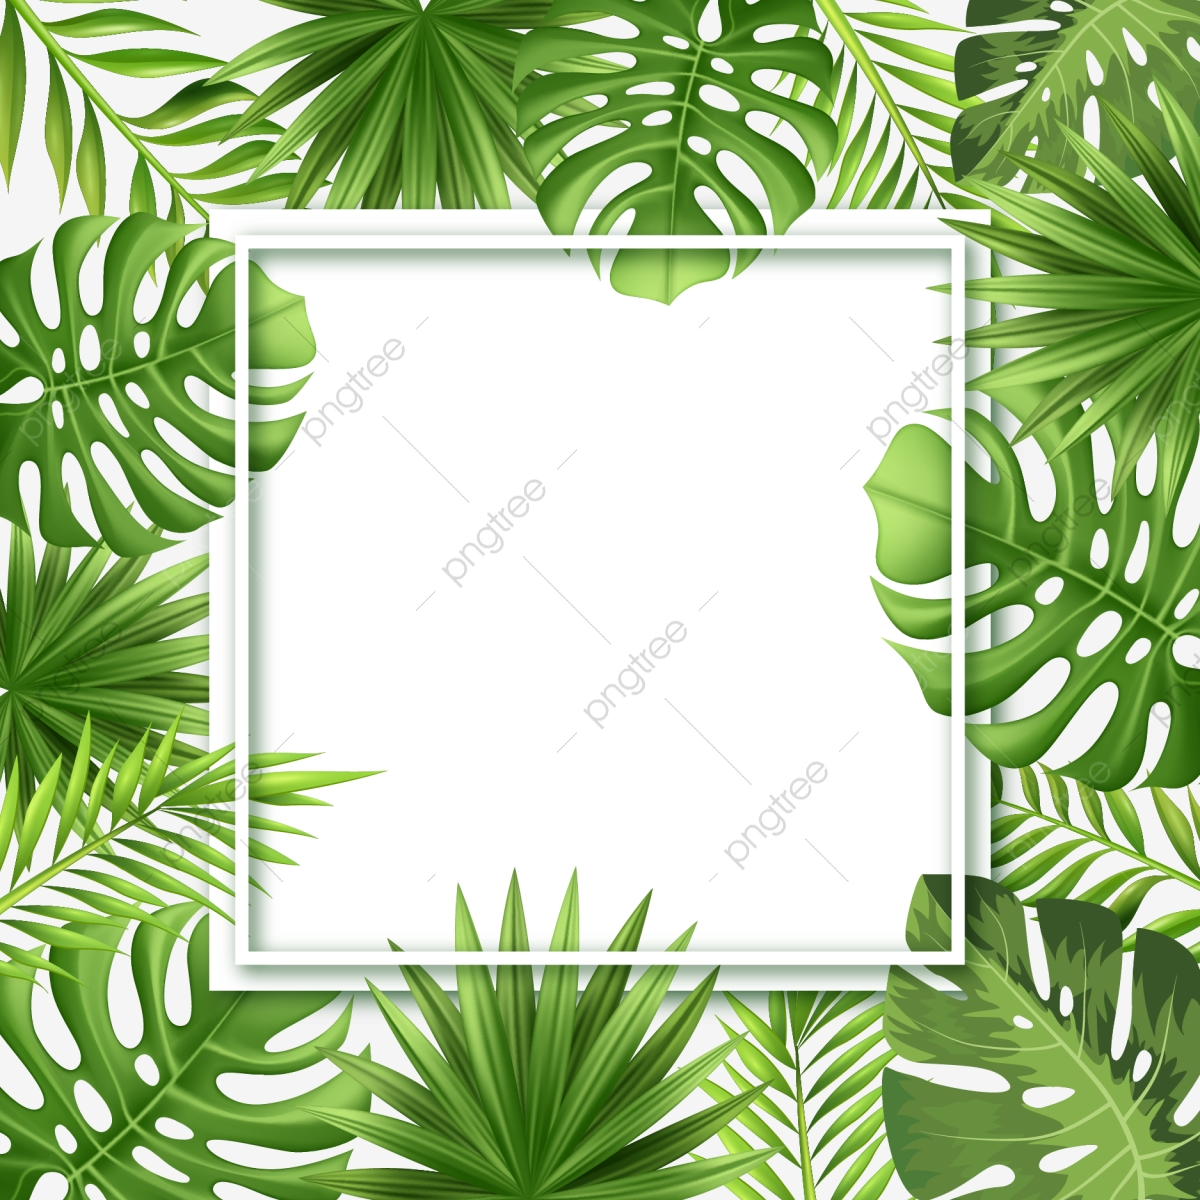 Arte Floral Vetor Creative Trendy Blank Frame With Tropical Leaves Background